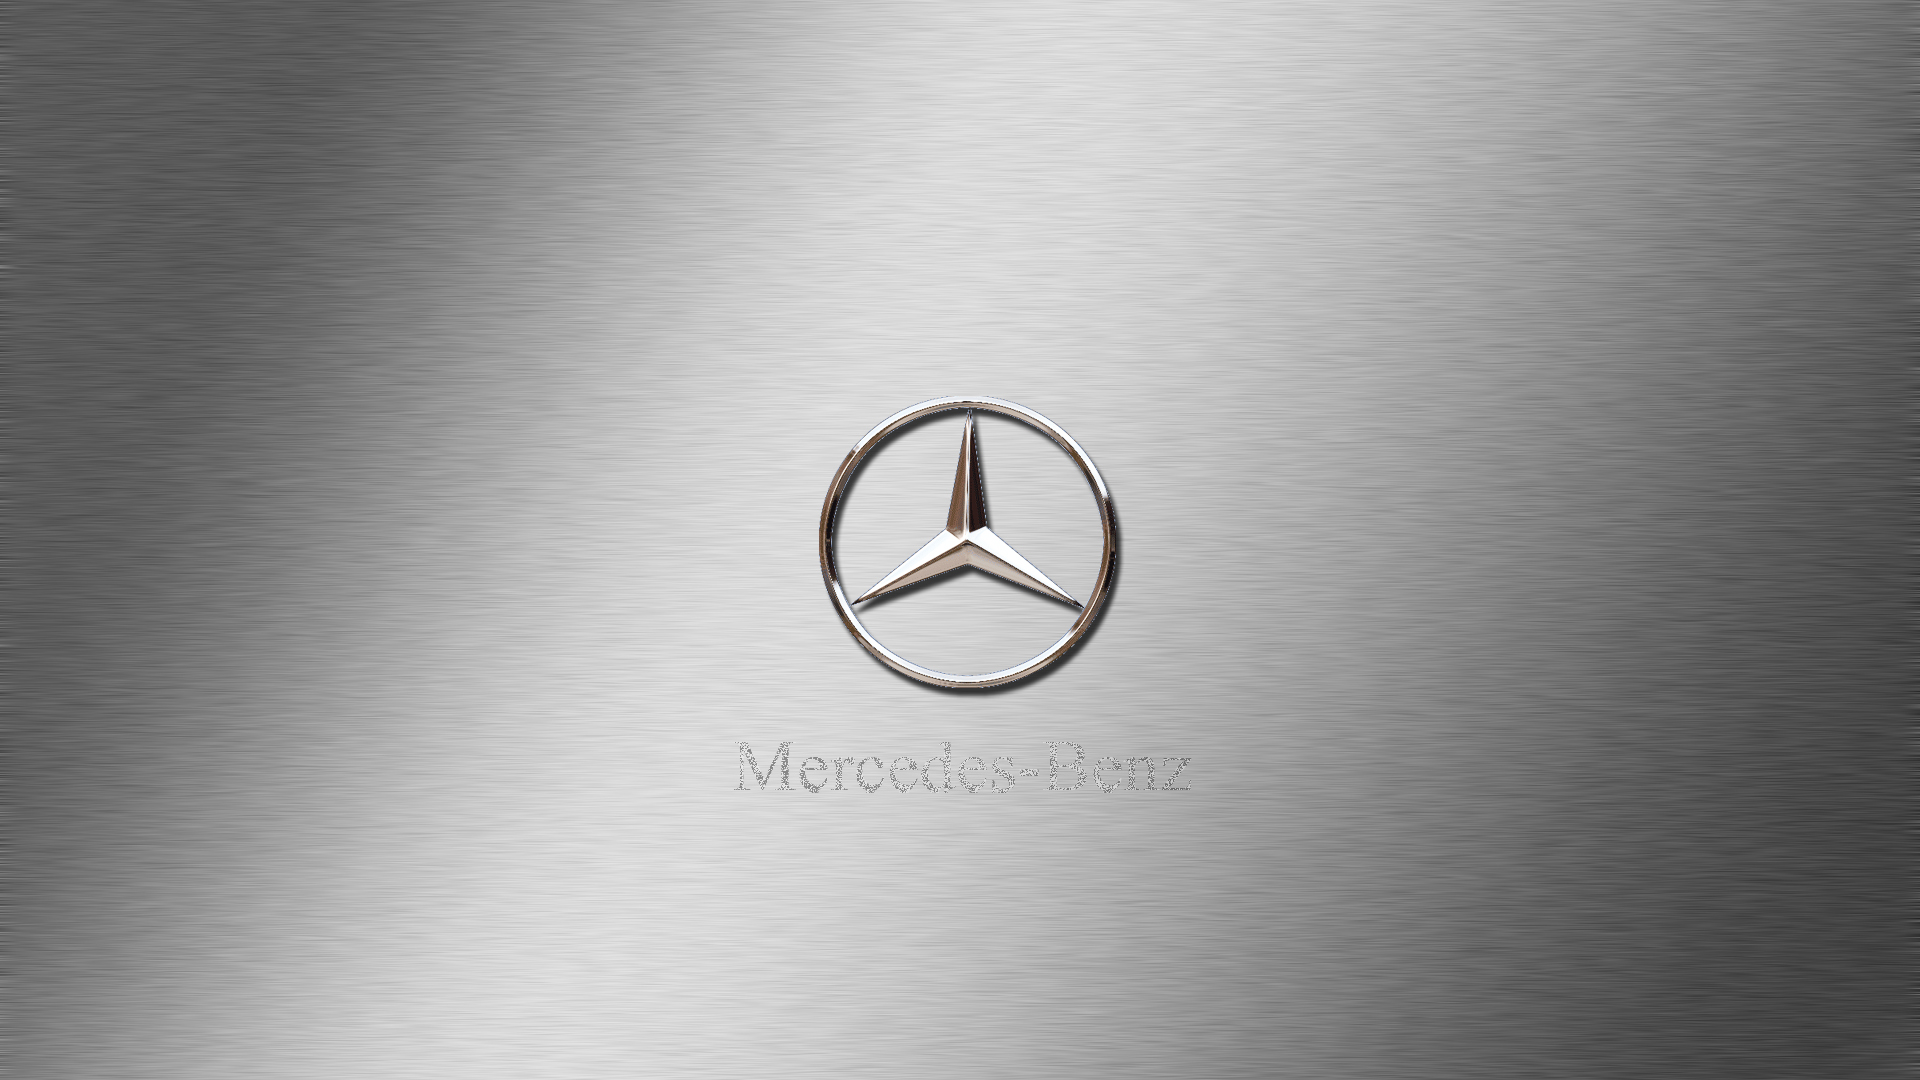 Mercedes benz logo wallpaper by rokpremuz on deviantart mercedes benz logo wallpaper by rokpremuz voltagebd Images